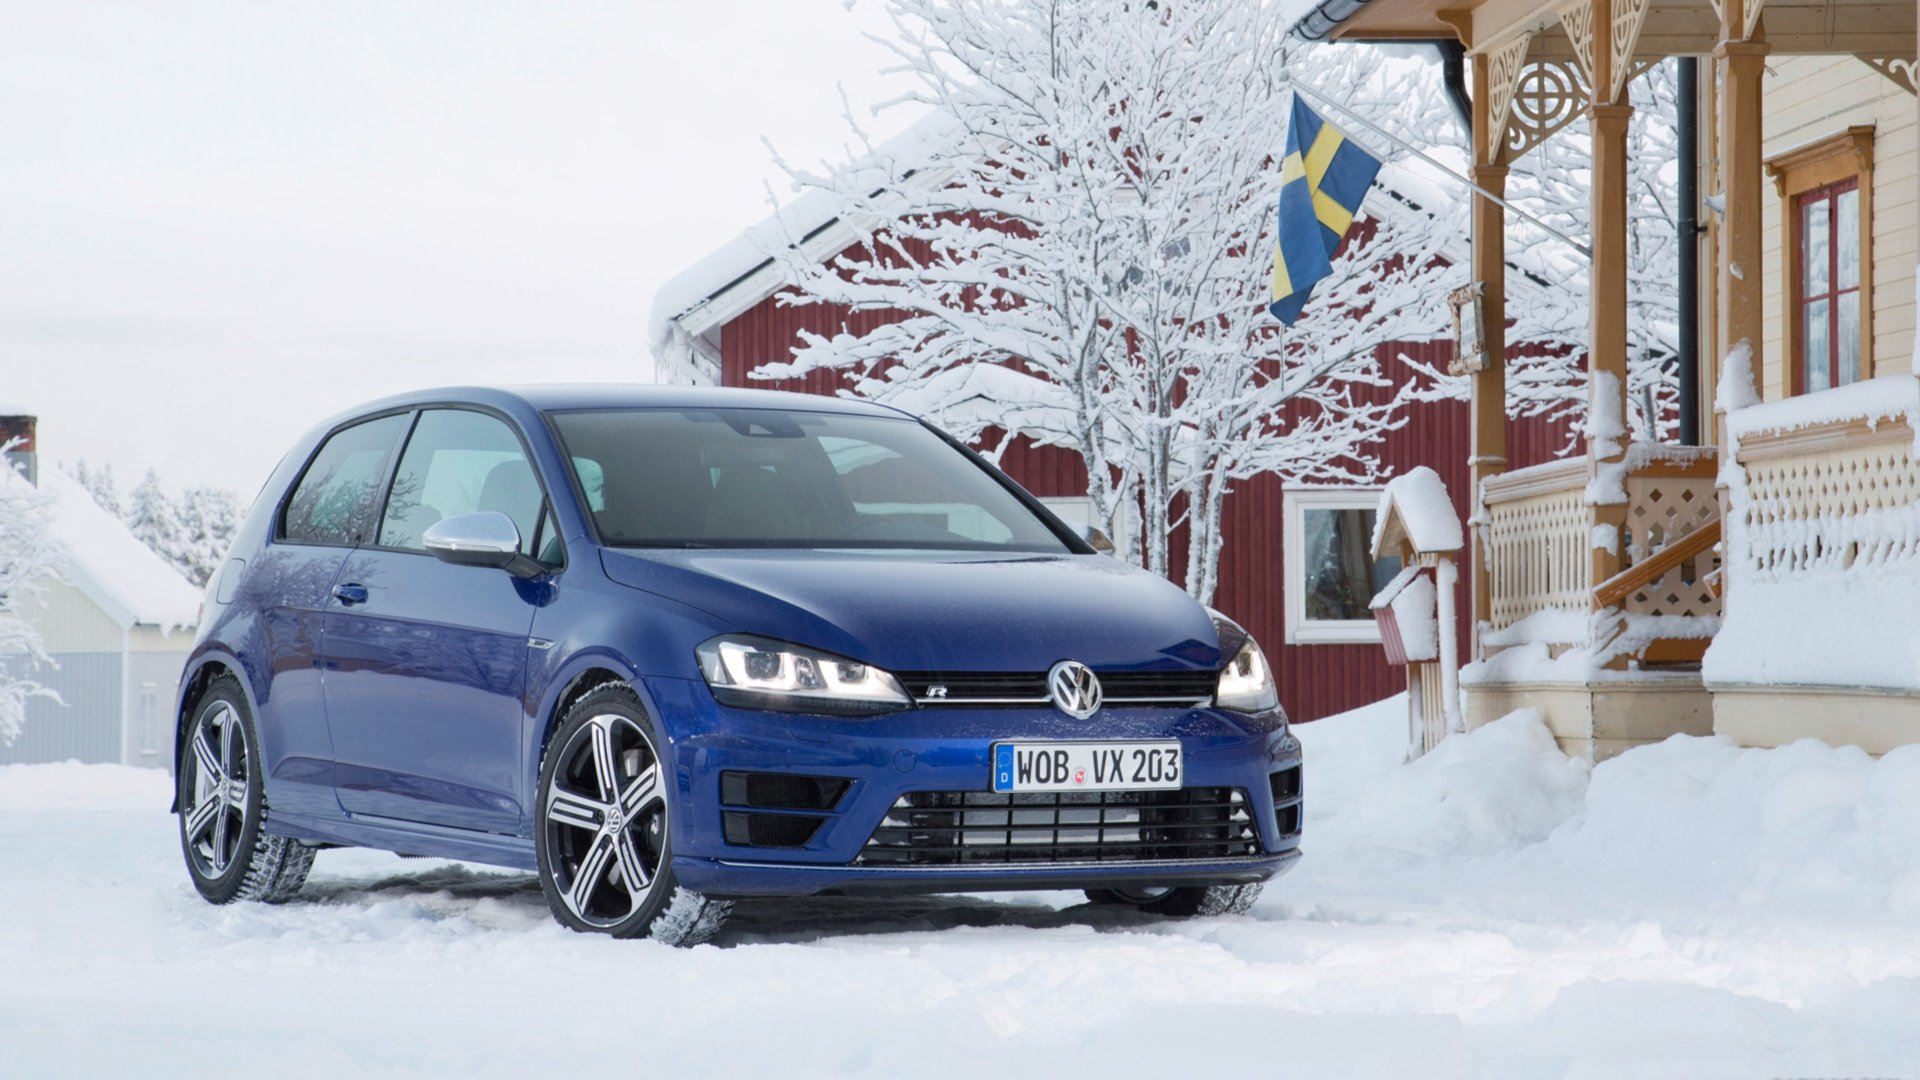 Free Download Volkswagen Golf R Wallpaper Id383557 Hd 1920x1080 For